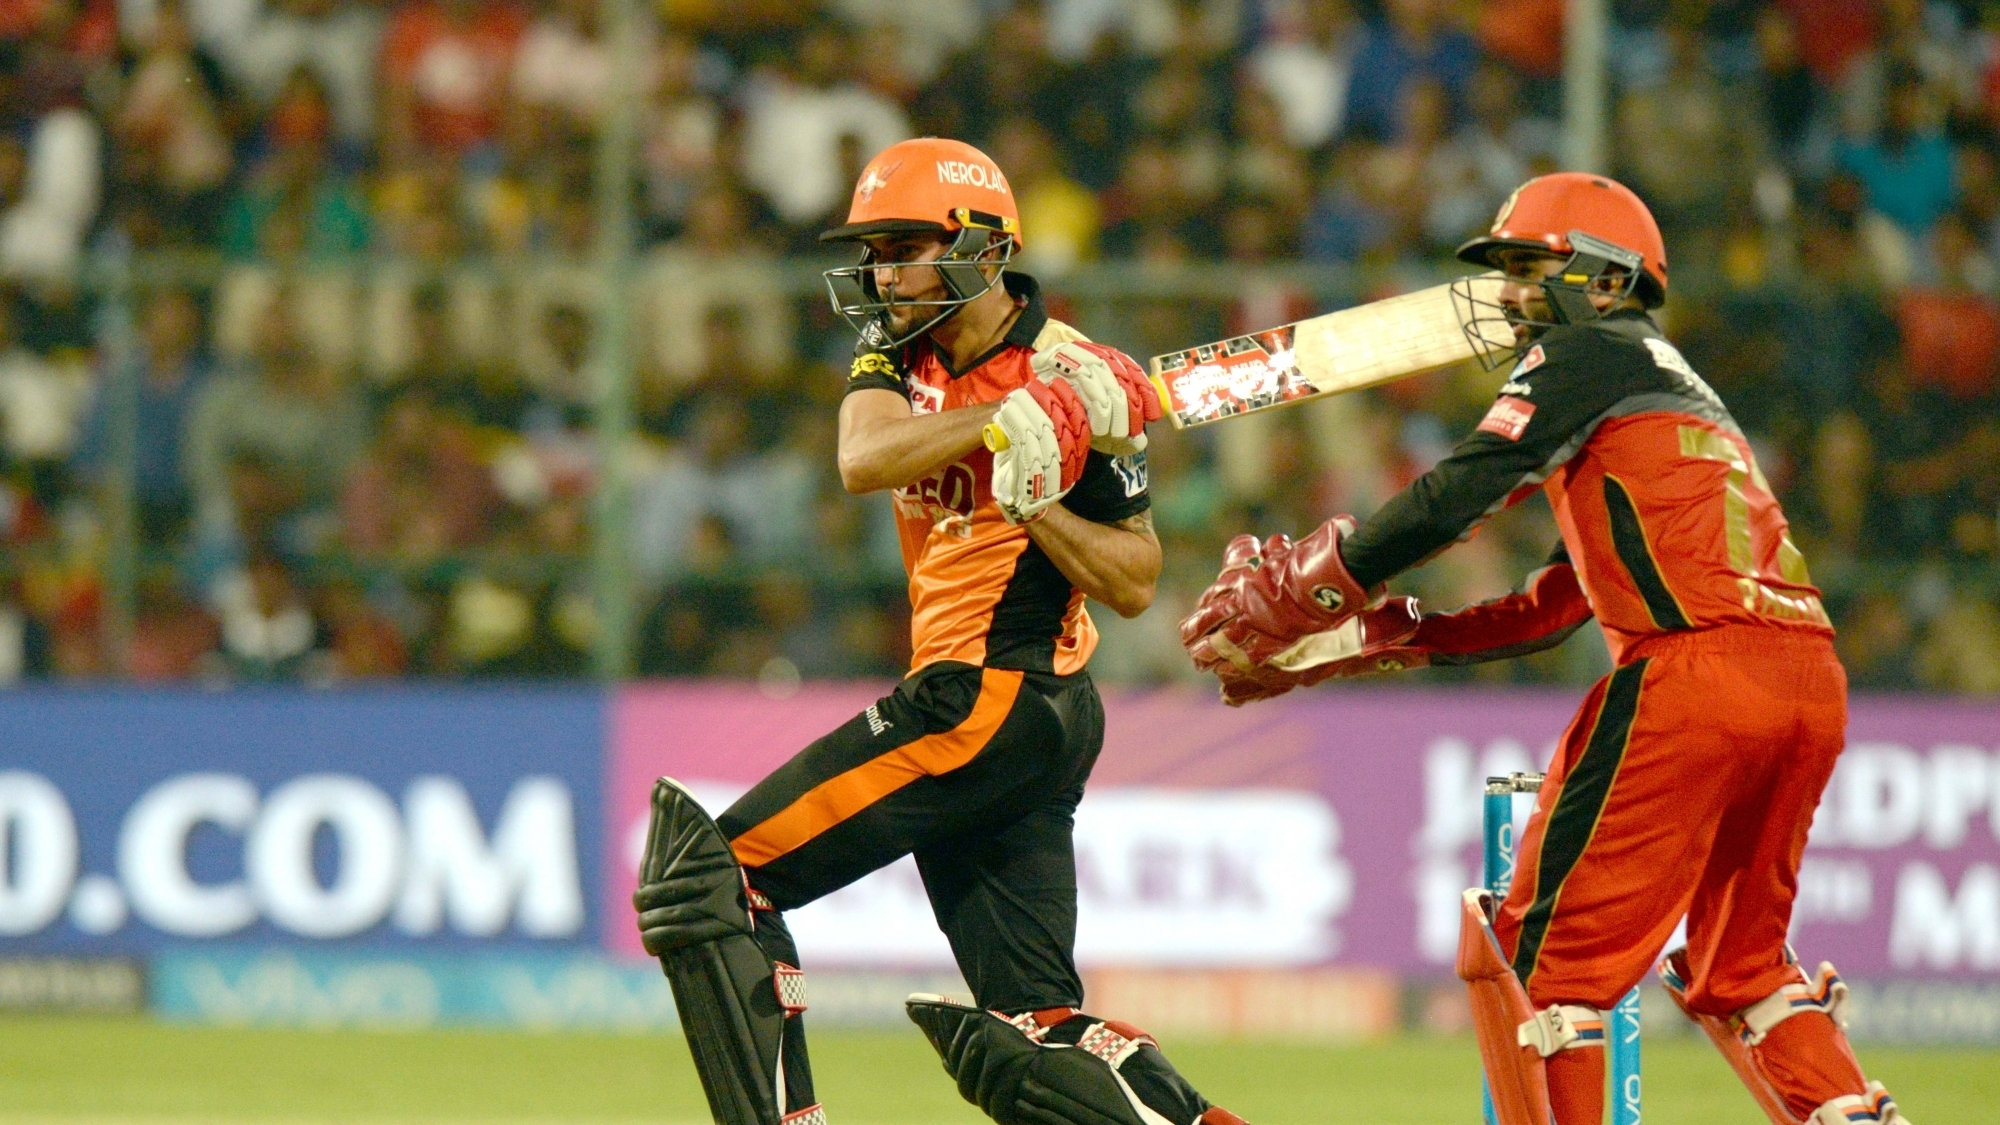 IPL 2018: Five most disappointing players of this season